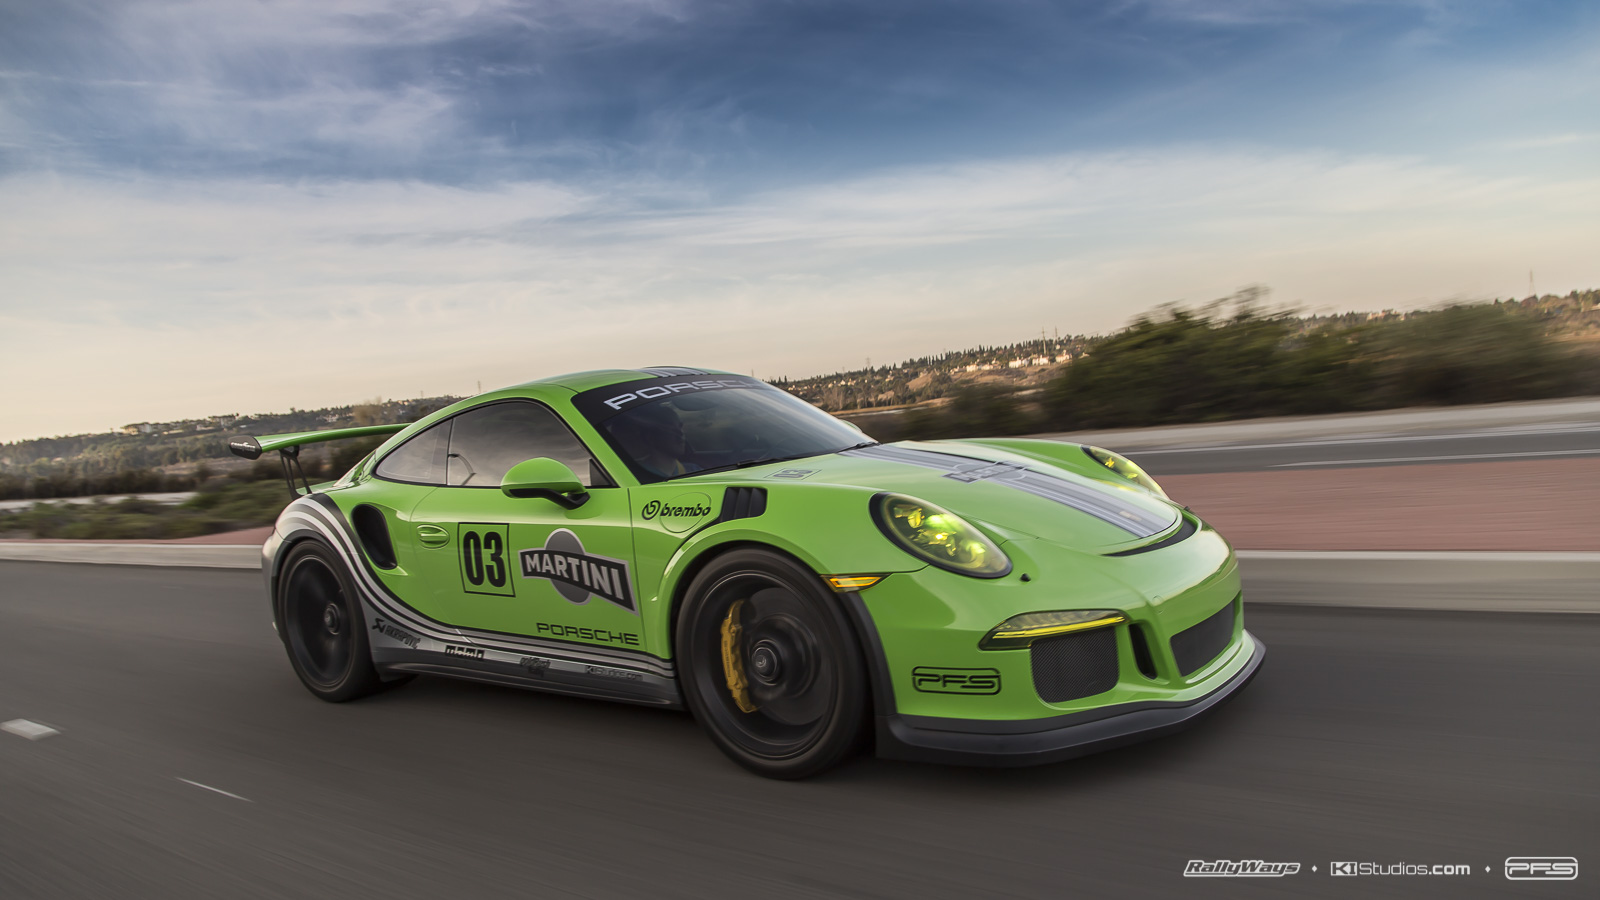 Green Martini Porsche 991 GT3 RS